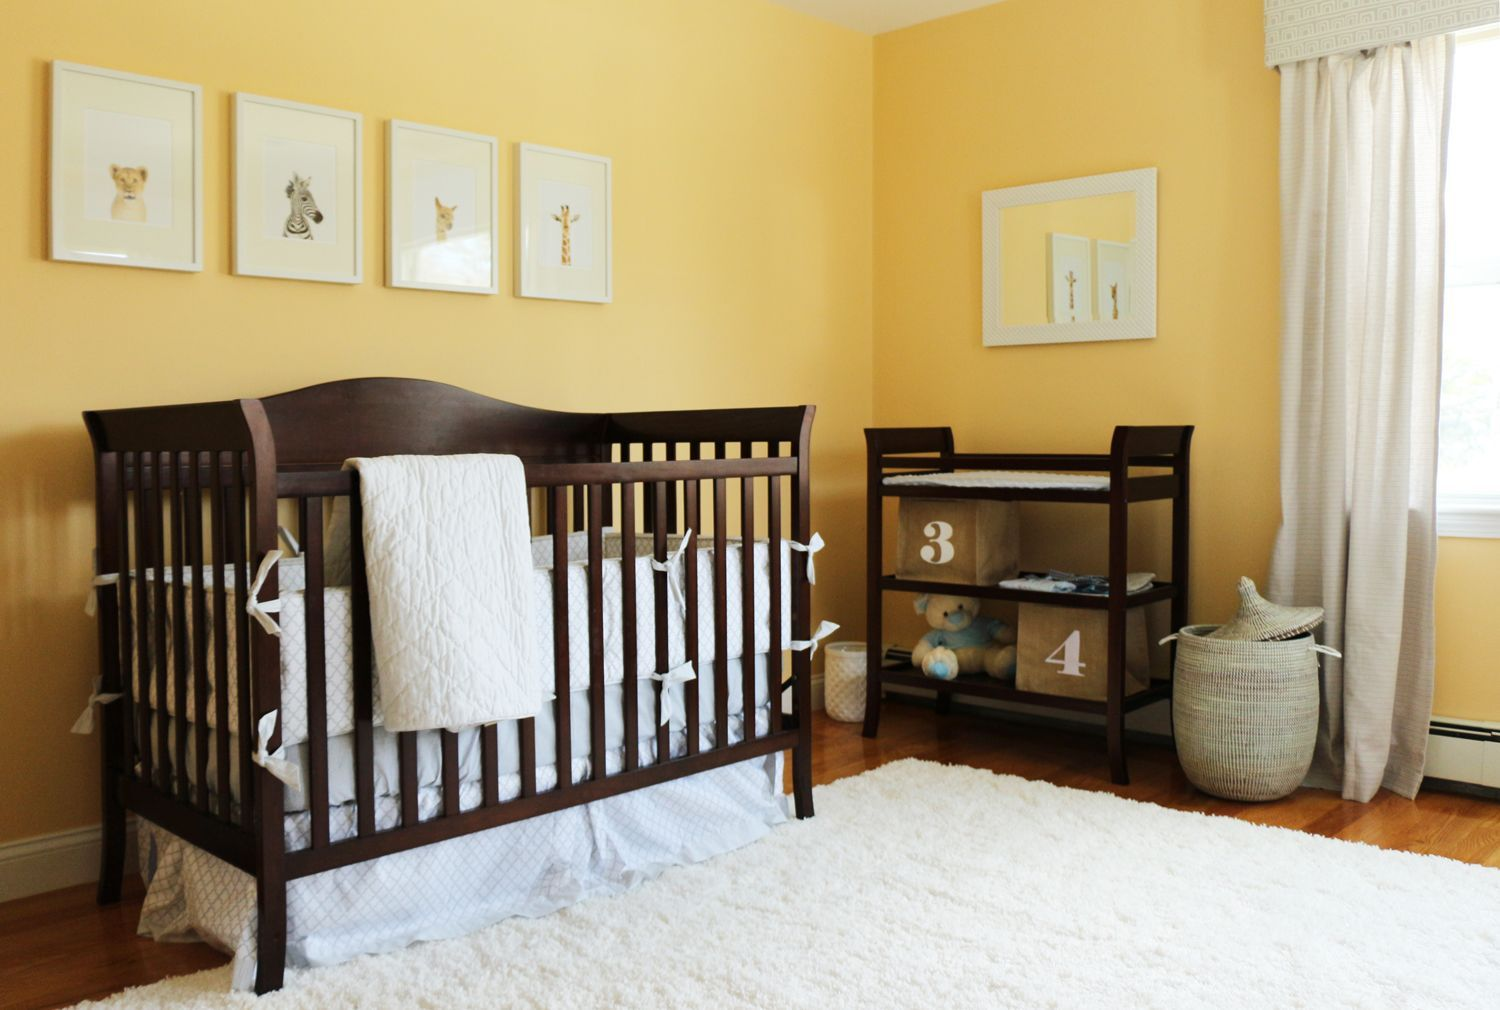 45 gender neutral baby nursery ideas for 2018 wood crib Nursery wall ideas